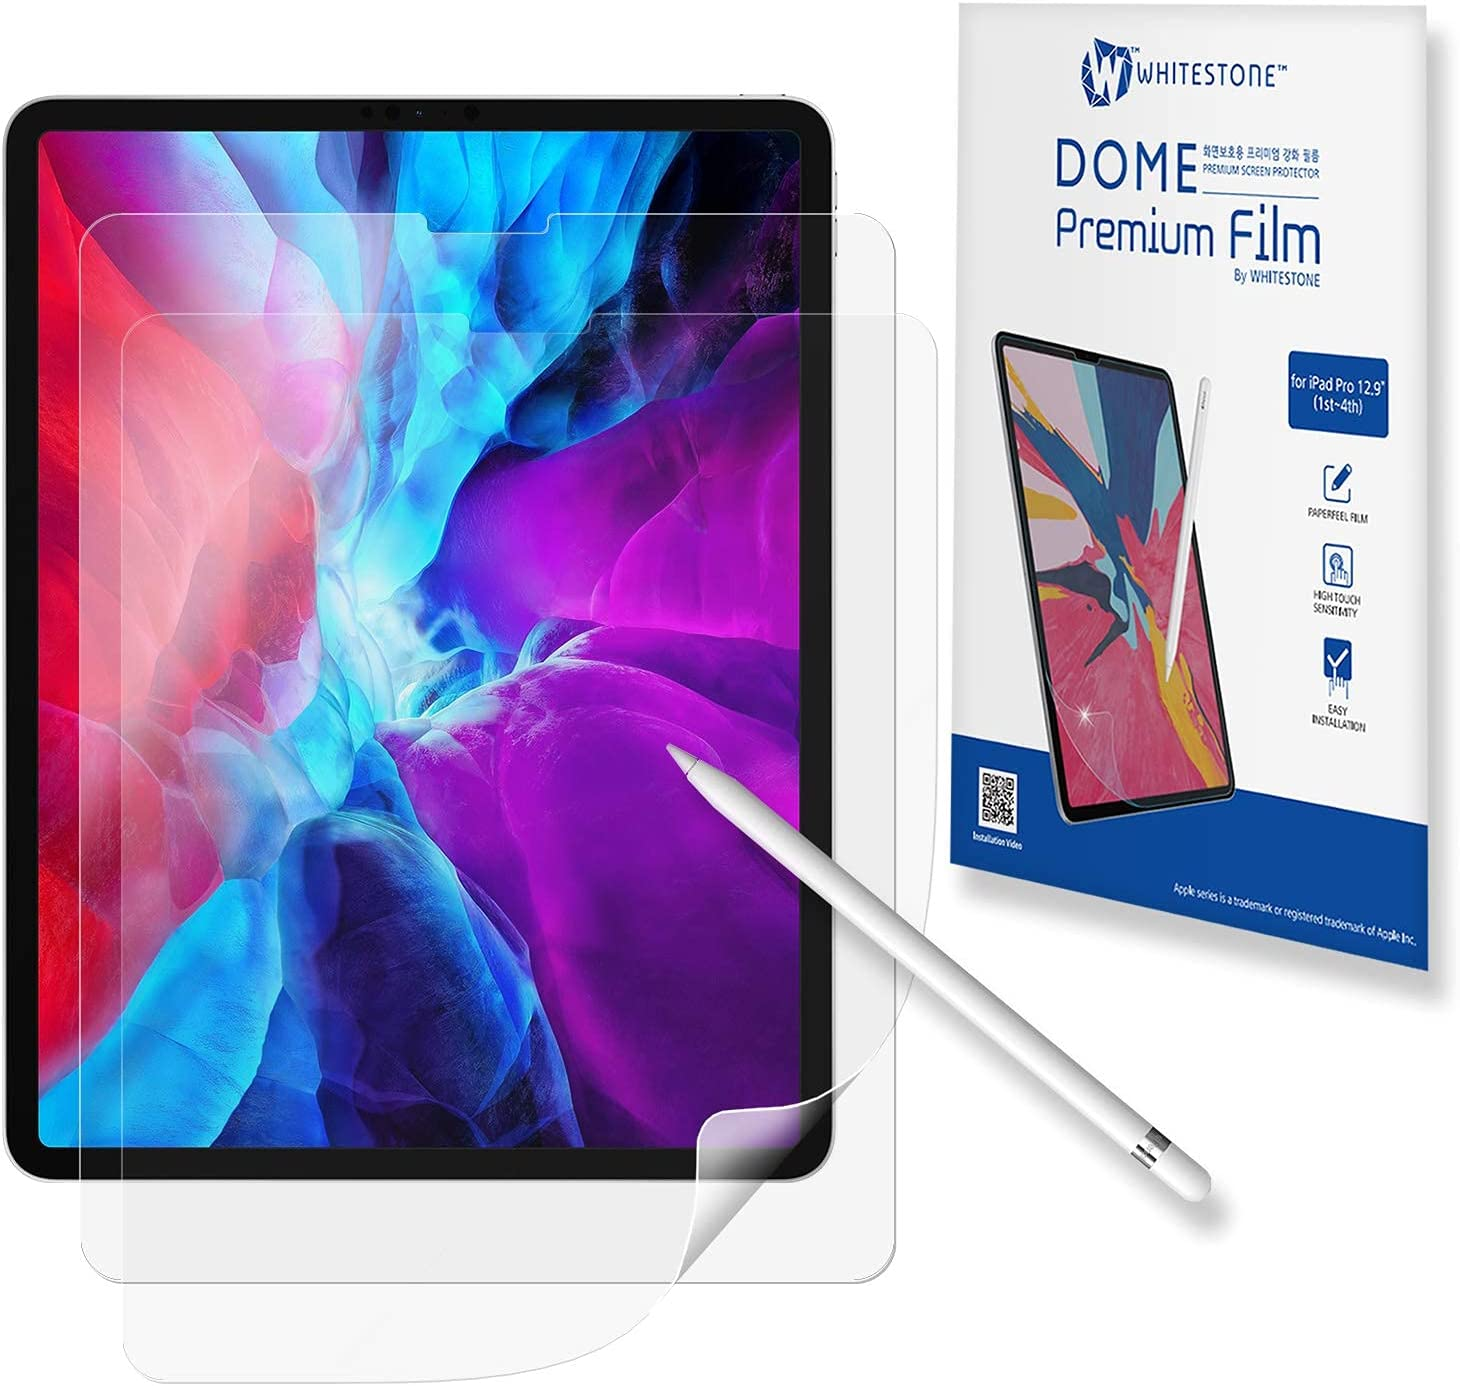 [Dome Premium Film] Paperfeel Screen Protector for iPad Pro (12.9 inch), Compatible with Apple Pencil by Whitestone - Two Pack